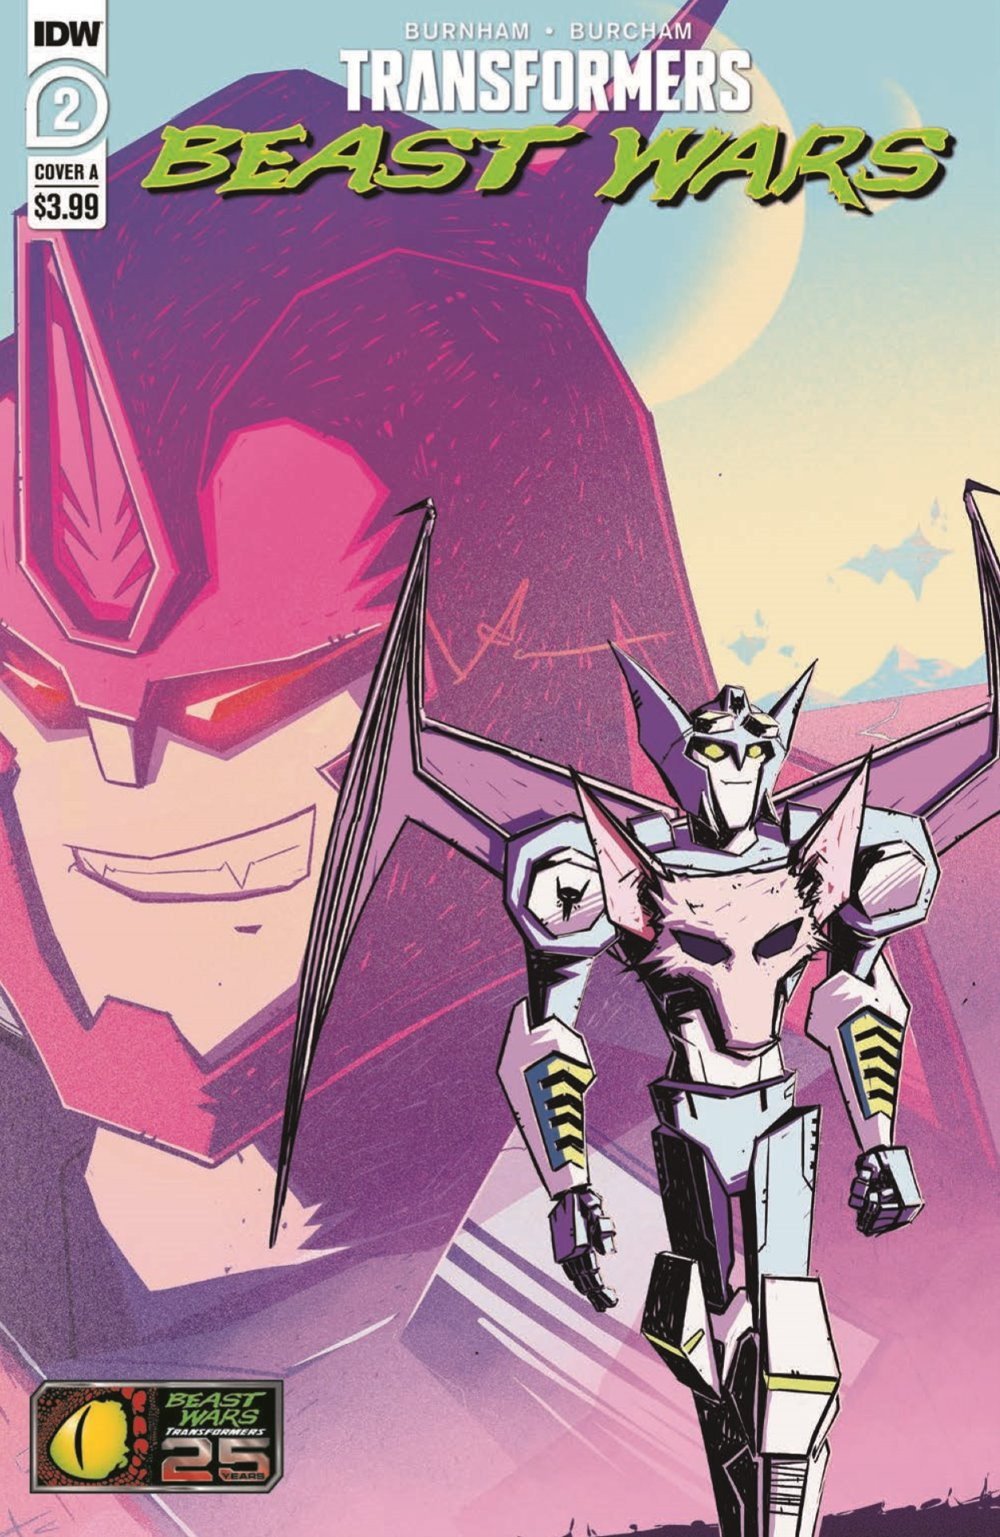 TFBW_02_pr-1 ComicList Previews: TRANSFORMERS BEAST WARS #2